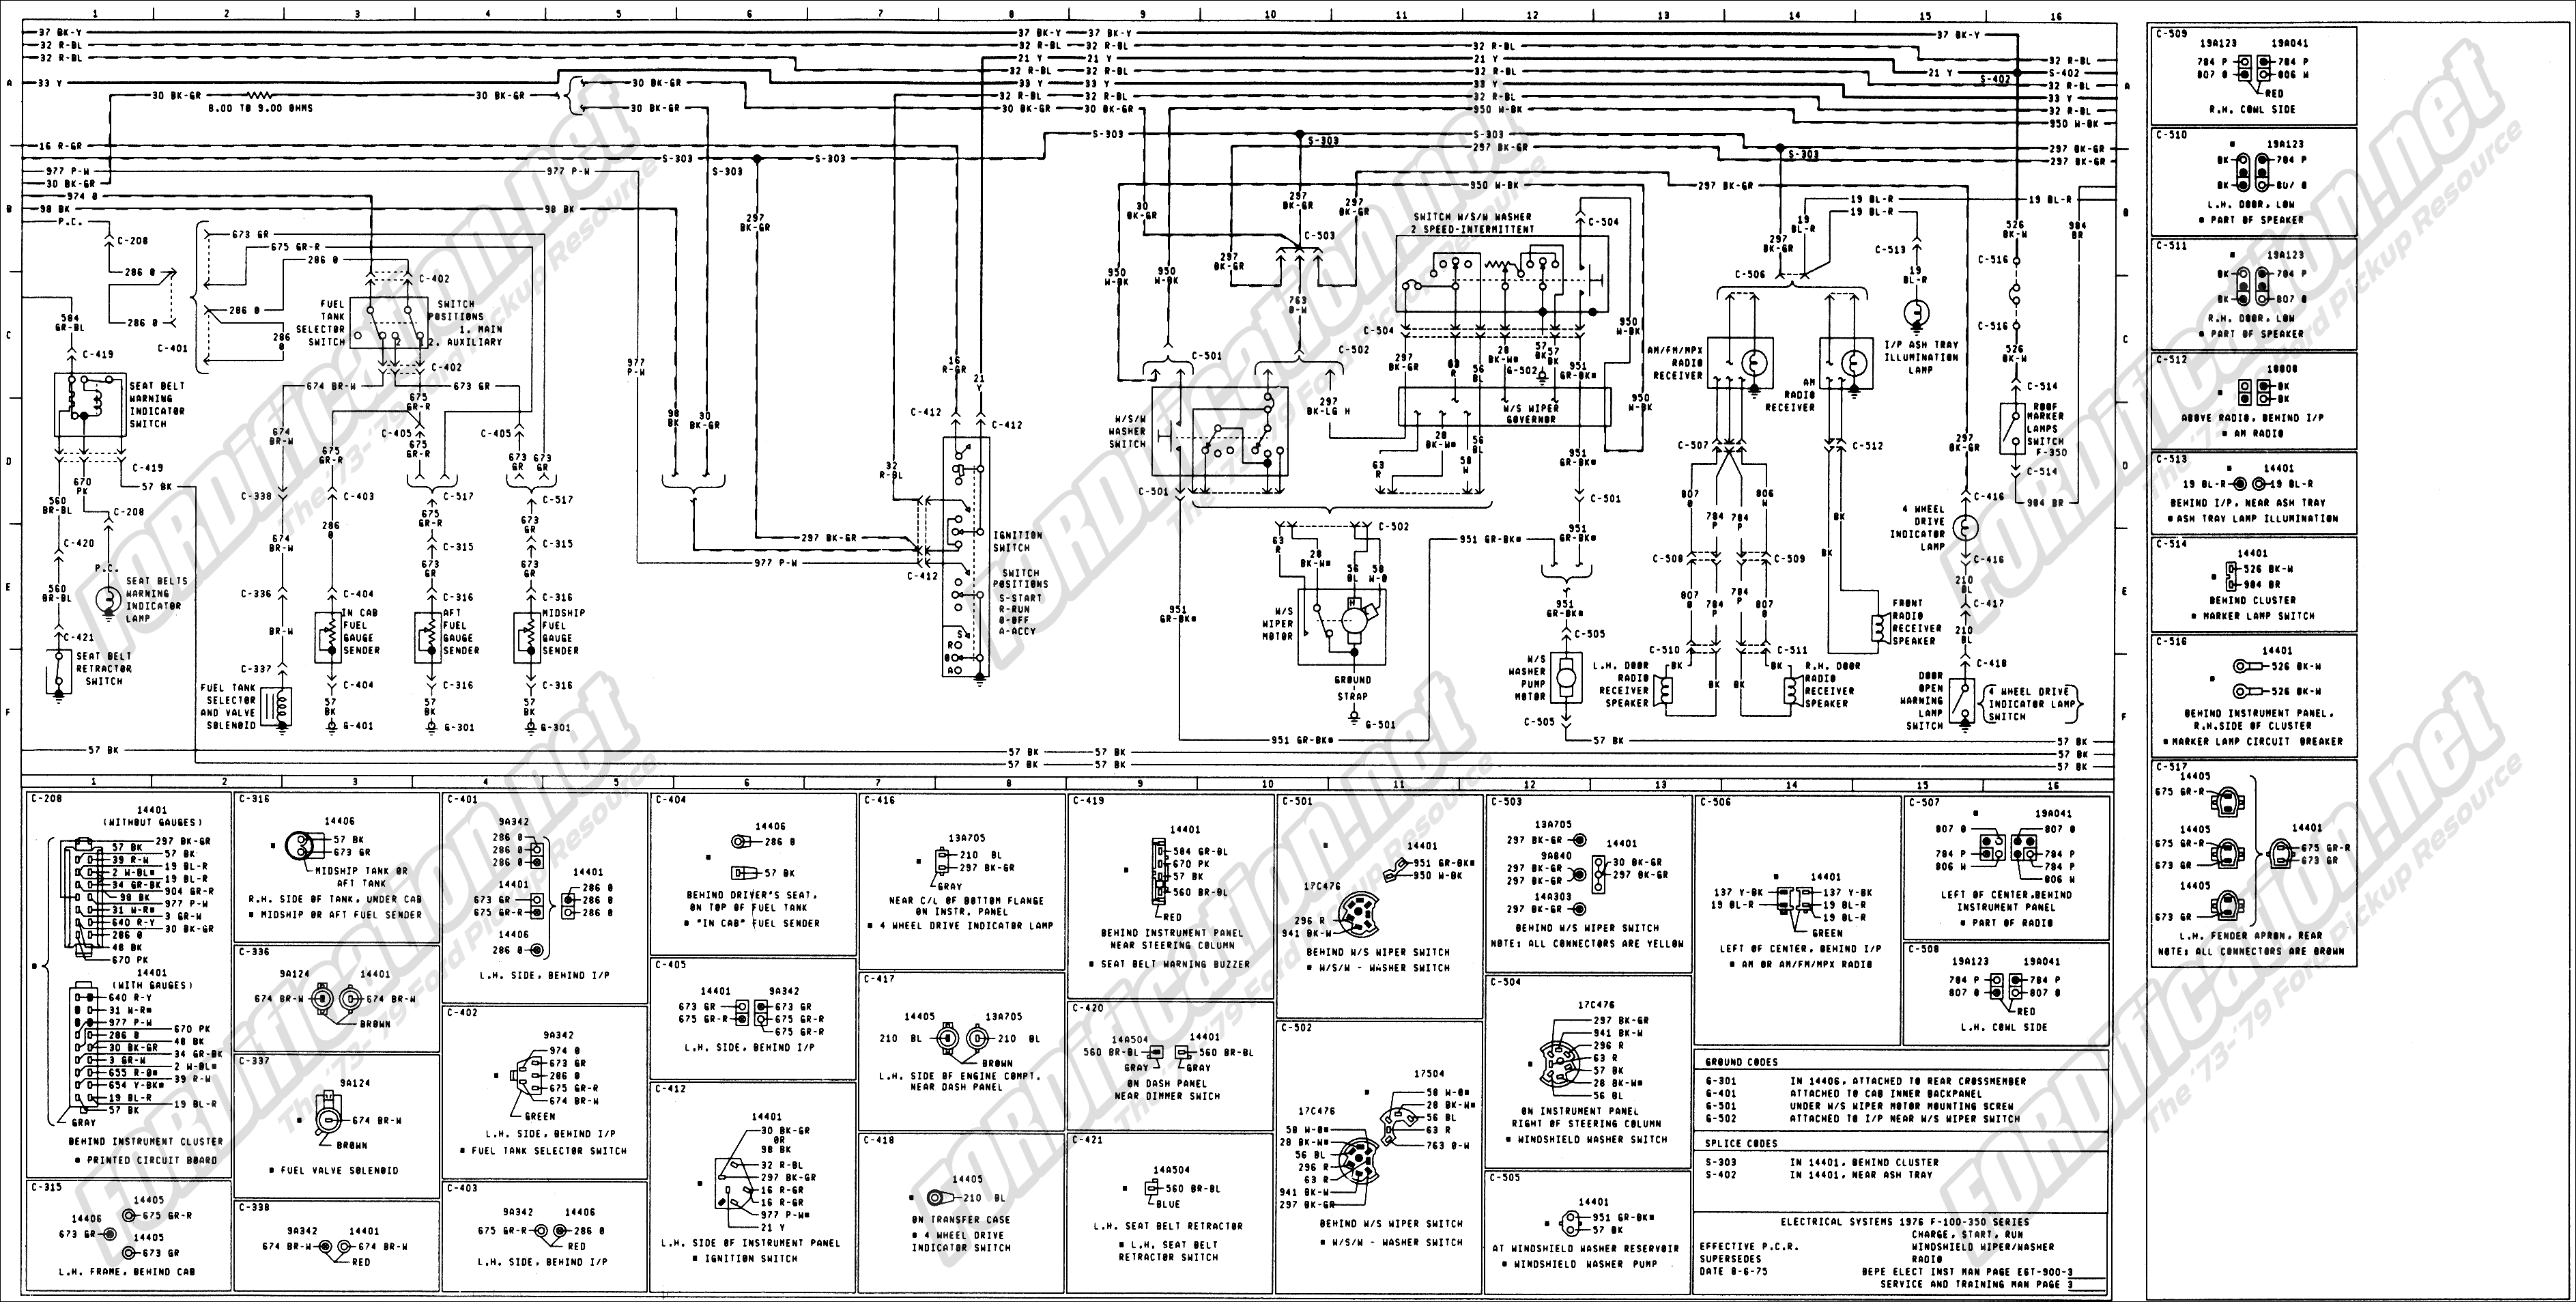 2002 F350 Wiring Schematic | Wiring Diagram F Trailer Wiring Schematic on